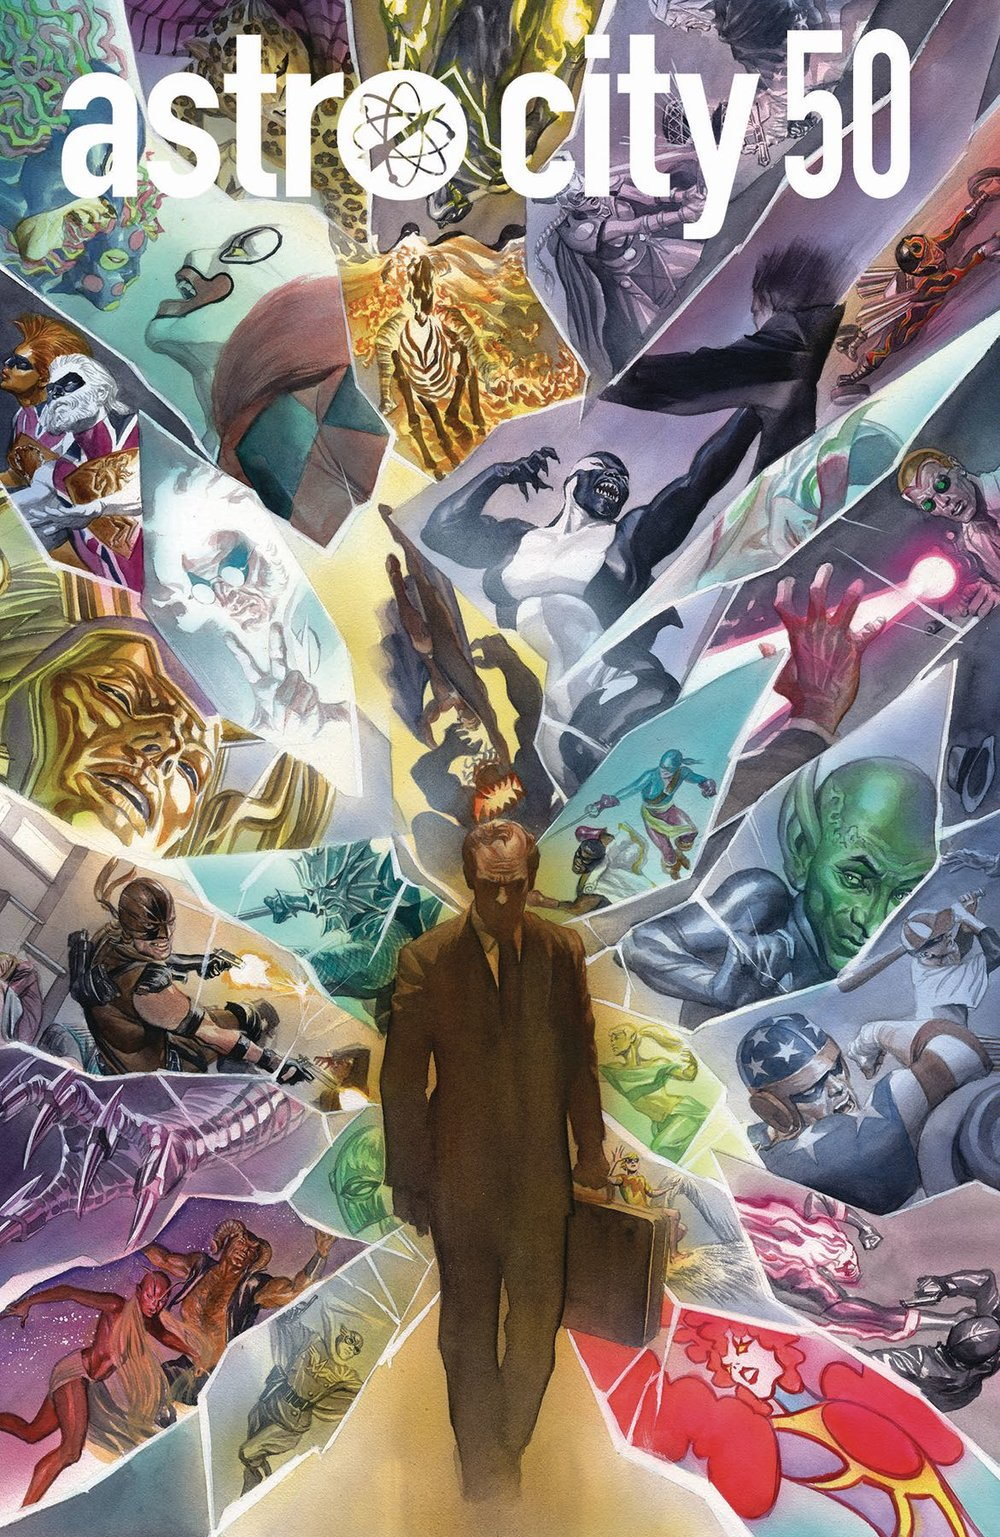 Episode 21 Co-Cover of the Week! - (DC/Vertigo) Astro City #50Cover by Alex RossWritten by Kurt BusiekIllustrated by Brent Eric AndersonDid the Content Match the Drapes? - UNR